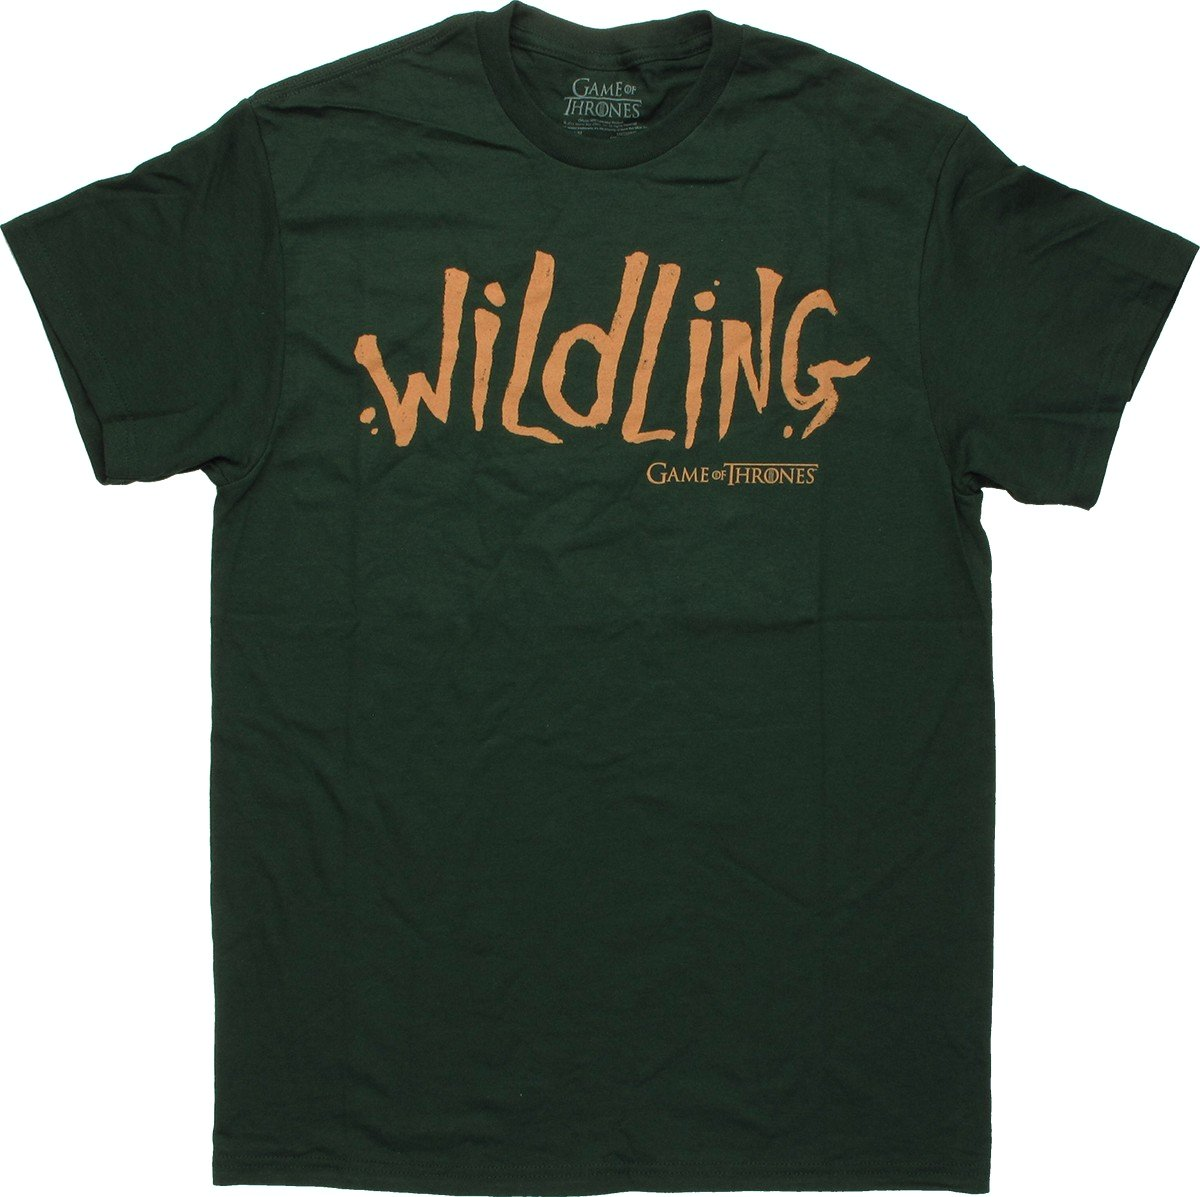 Game of thrones wildling t shirt for Throne of games shirt